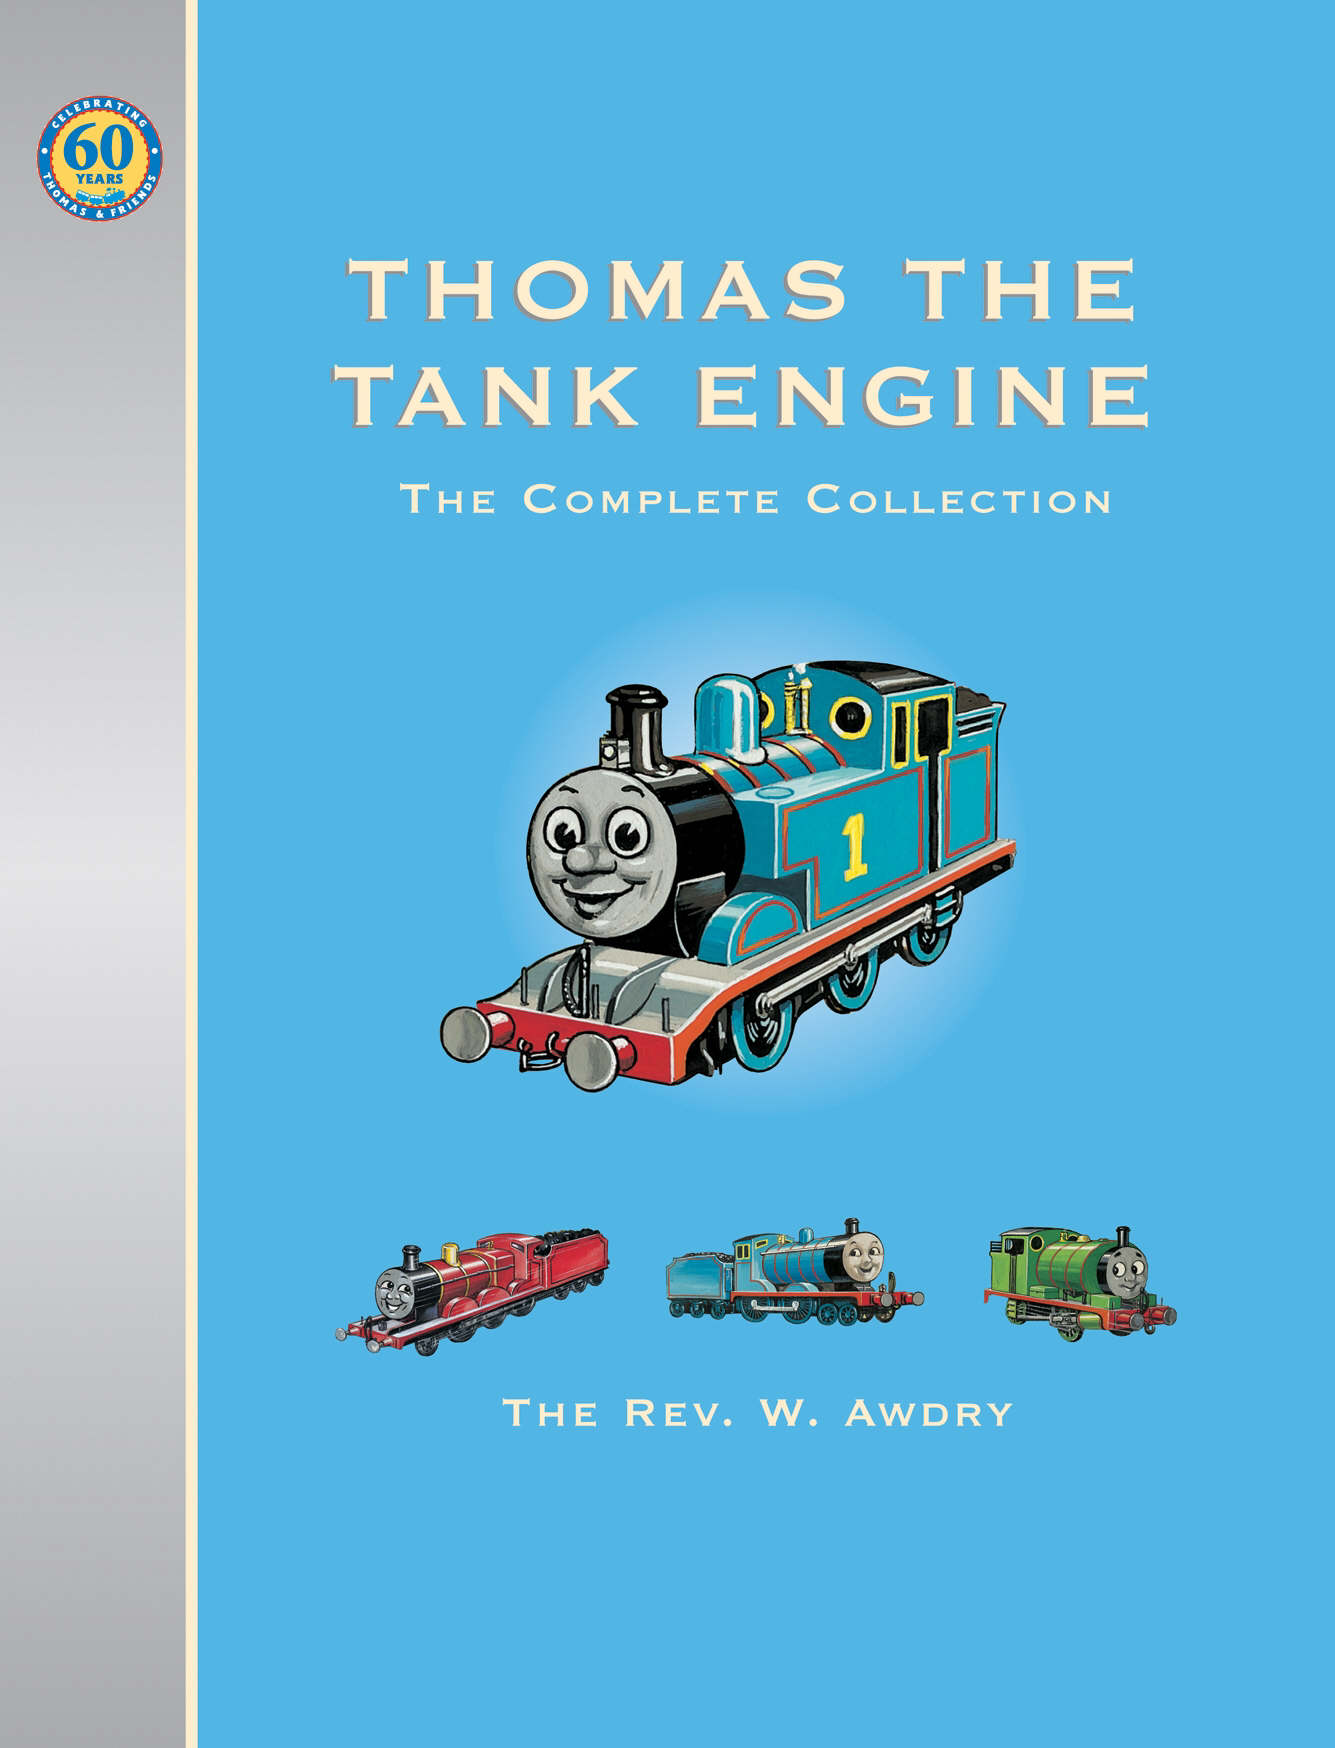 thomas the tank engine complete collection pdf